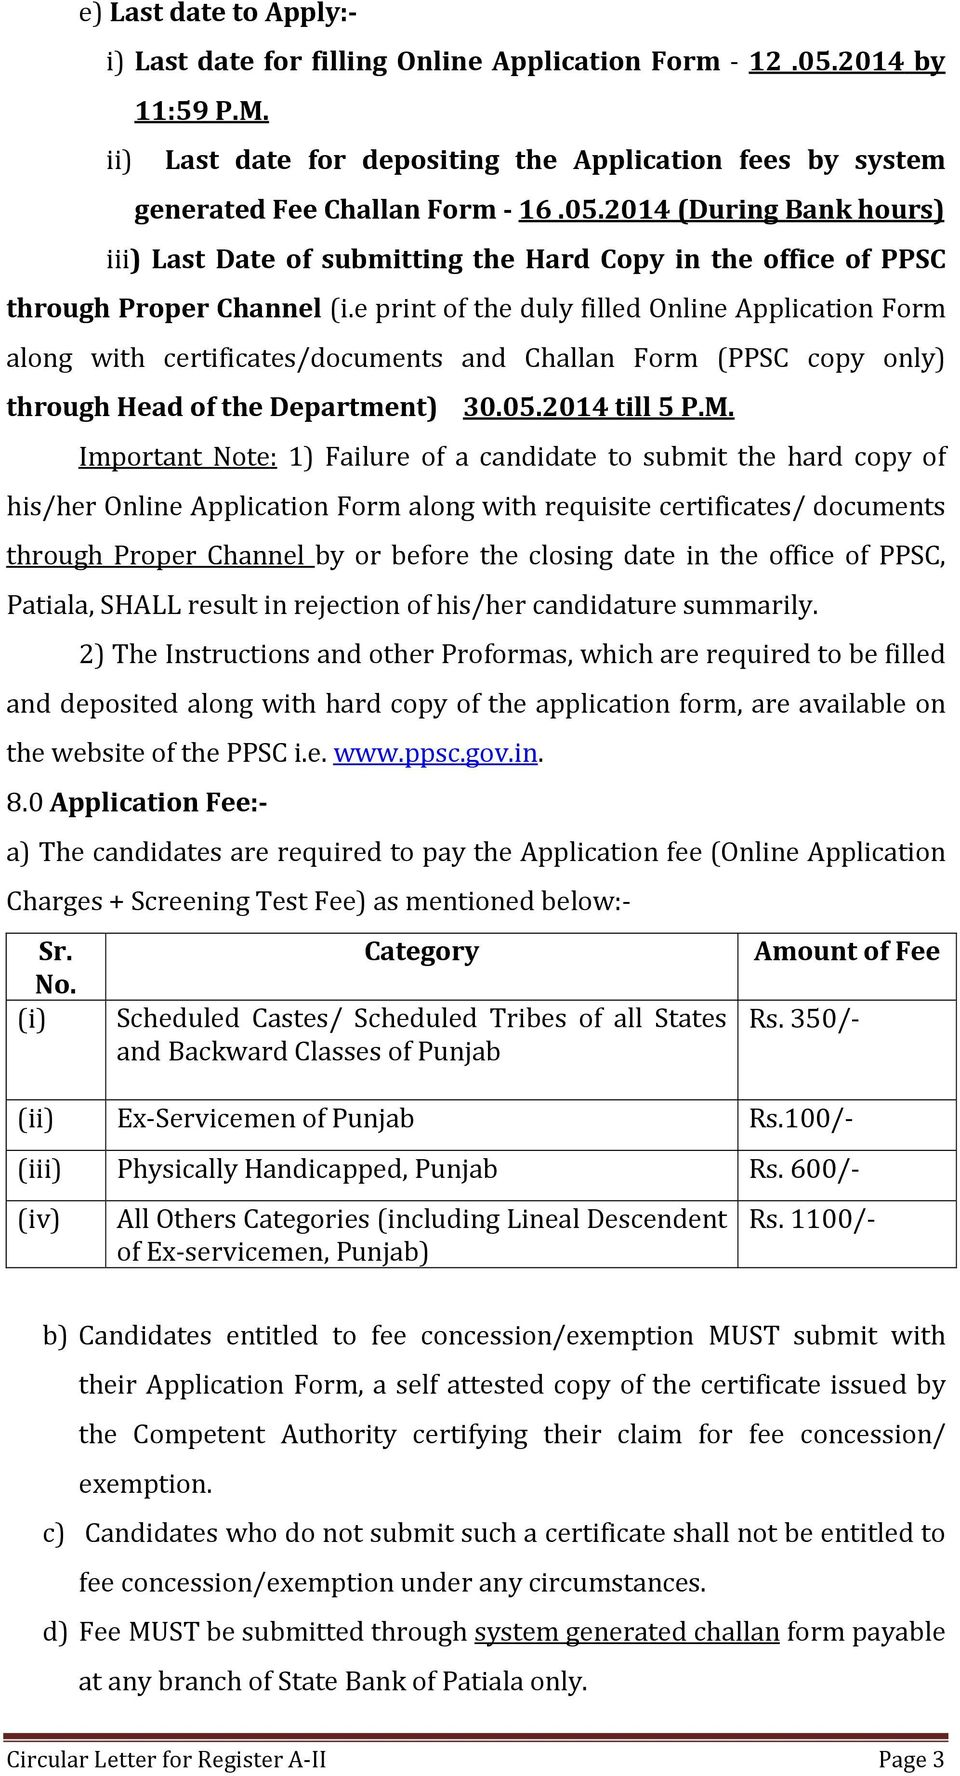 Important Note: 1) Failure of a candidate to submit the hard copy of his/her Online Application Form along with requisite certificates/ documents through Proper Channel by or before the closing date